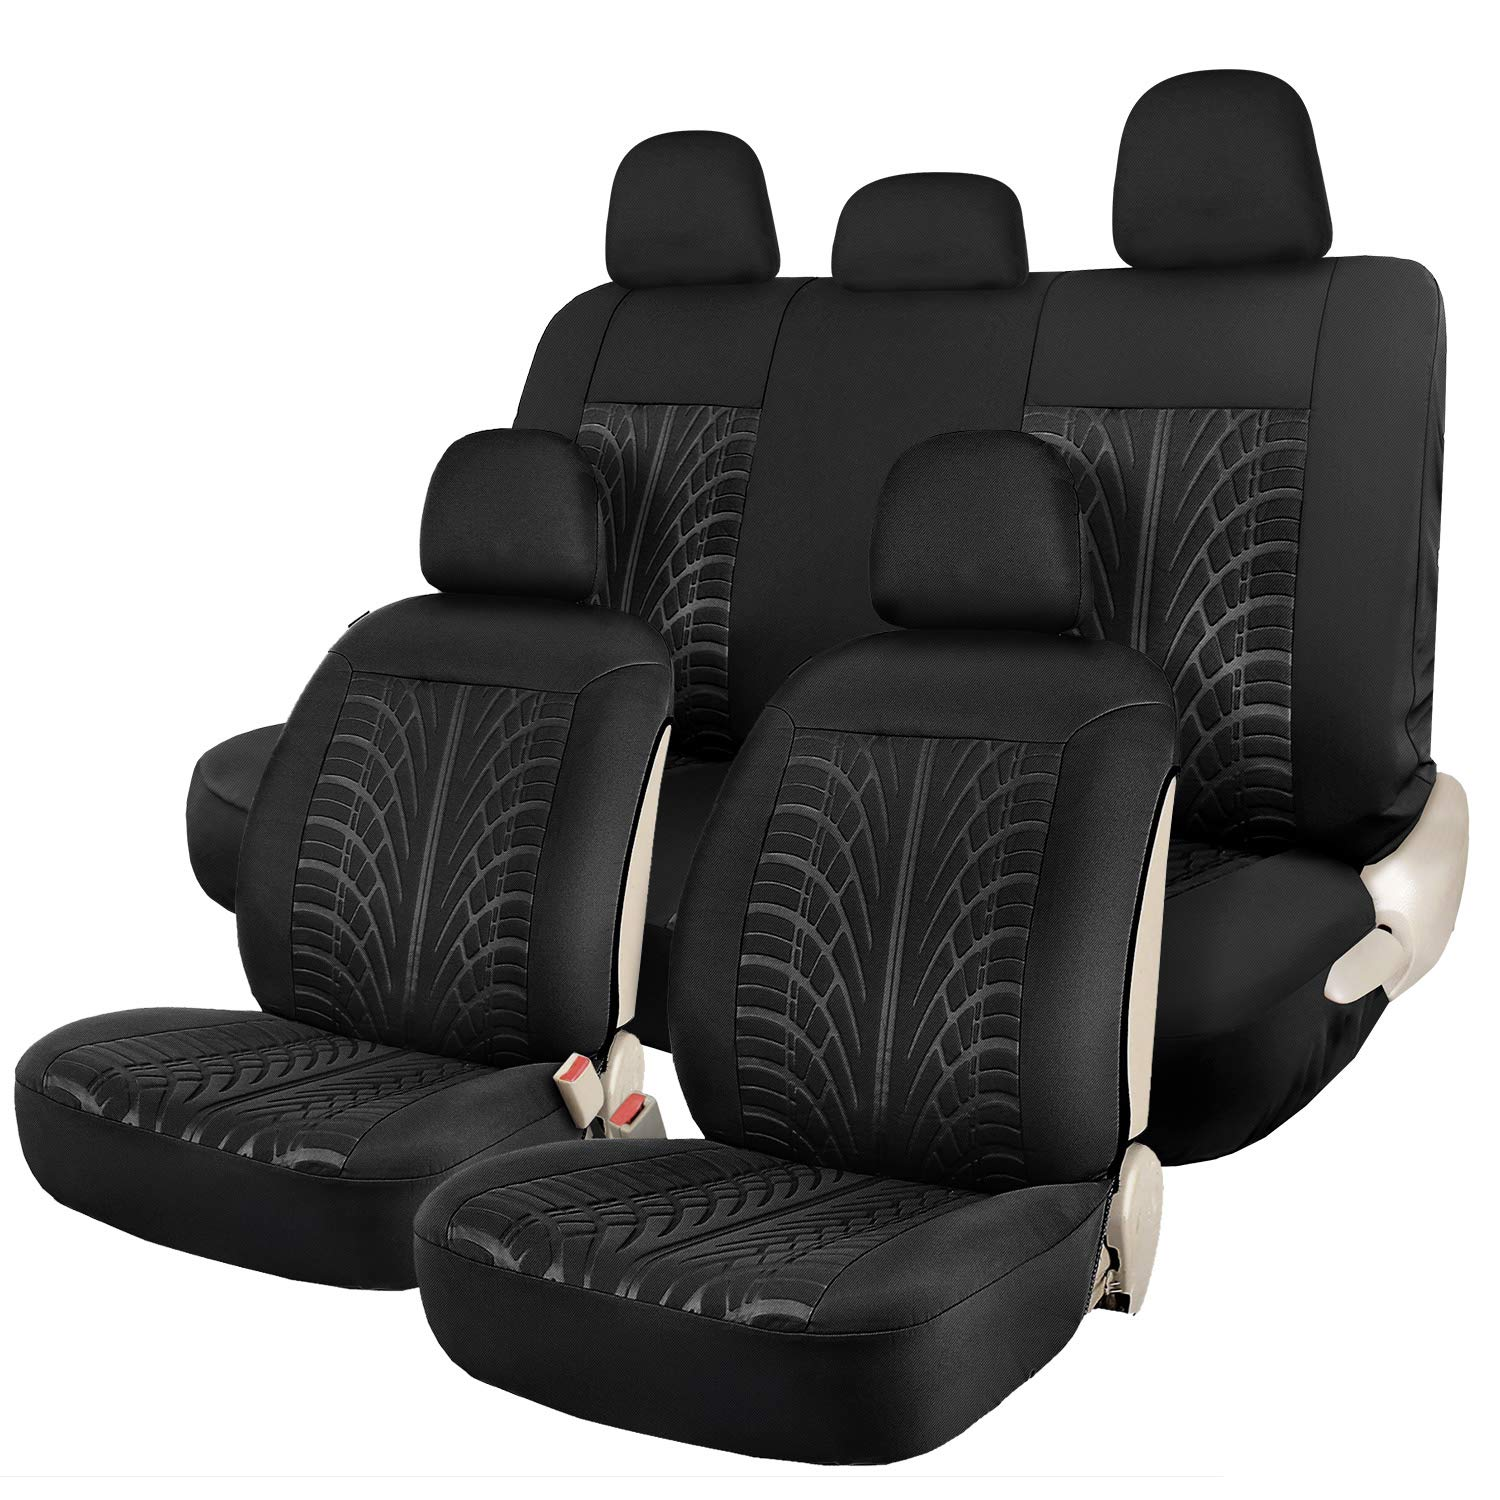 Leader Accessories Embossed Black Car Seat Covers Full Set - 2 Sideless Front Seat Cover, 5 Headrest Cover, 2 Rear Bench Seat Protector by Leader Accessories